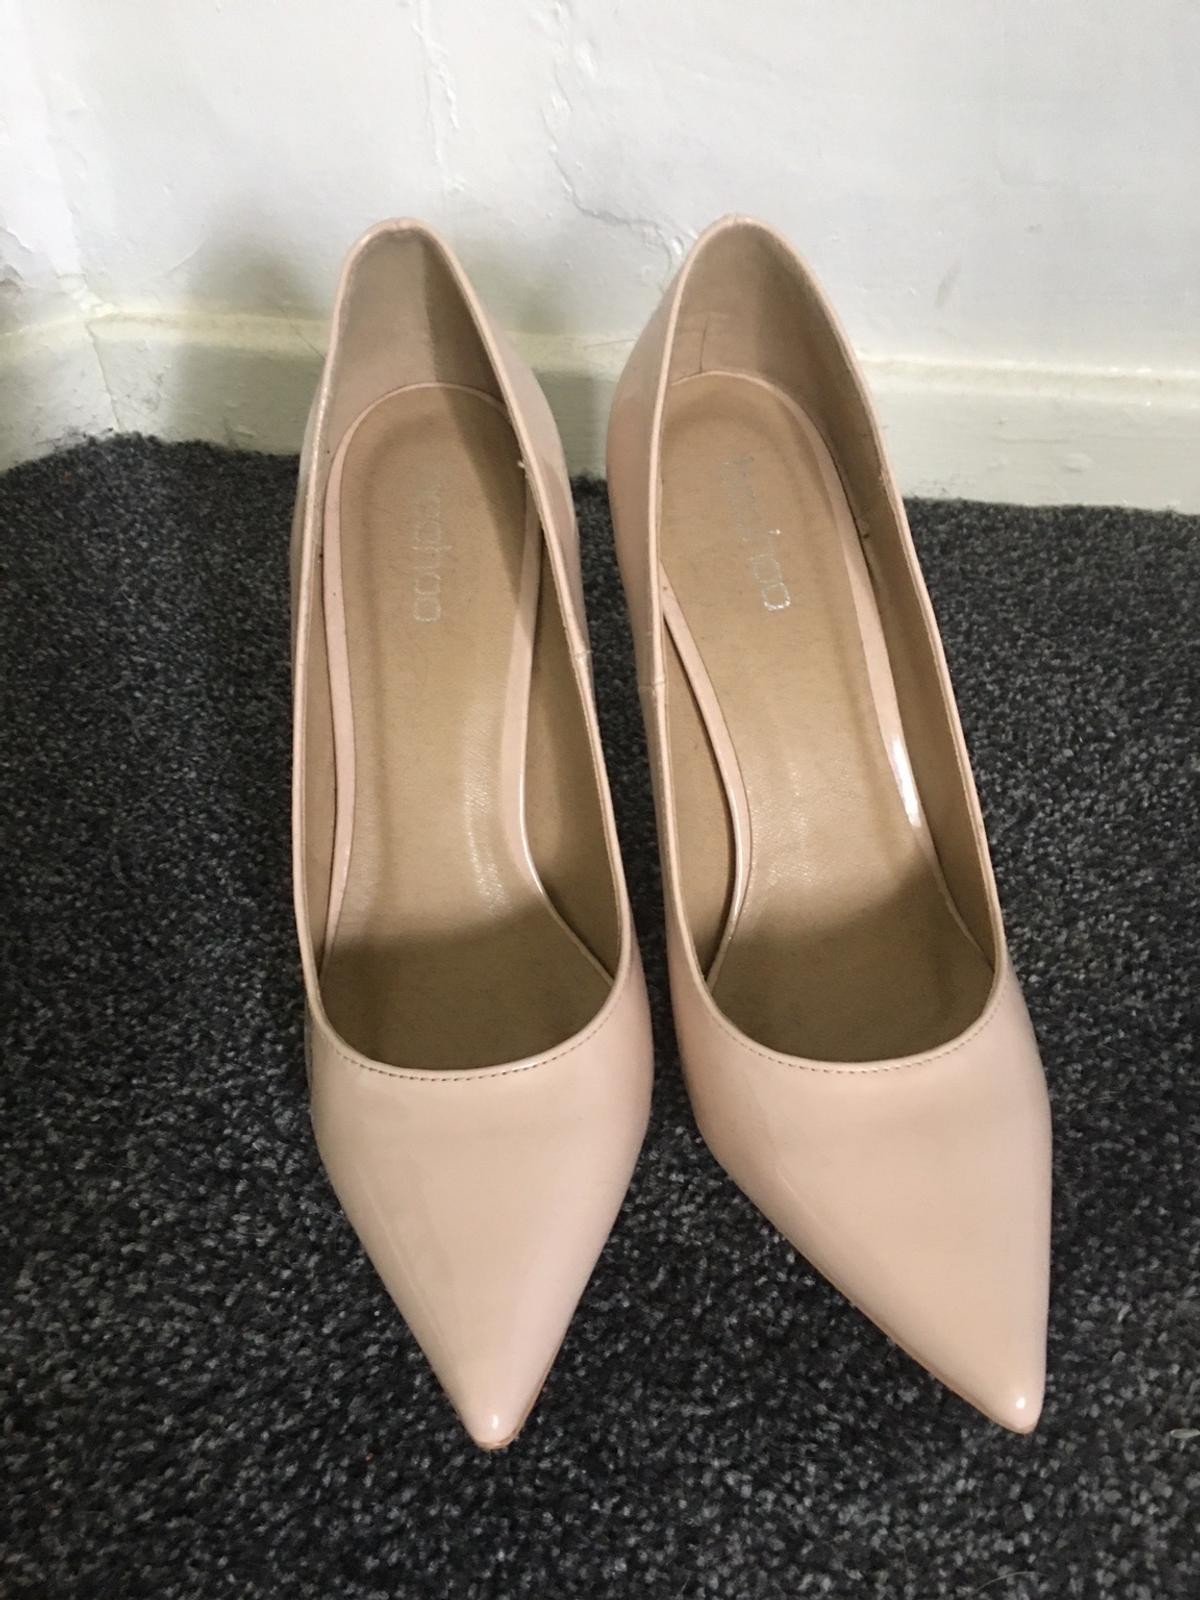 Beautiful nude shoes Worn once Lovely condition Sz 7